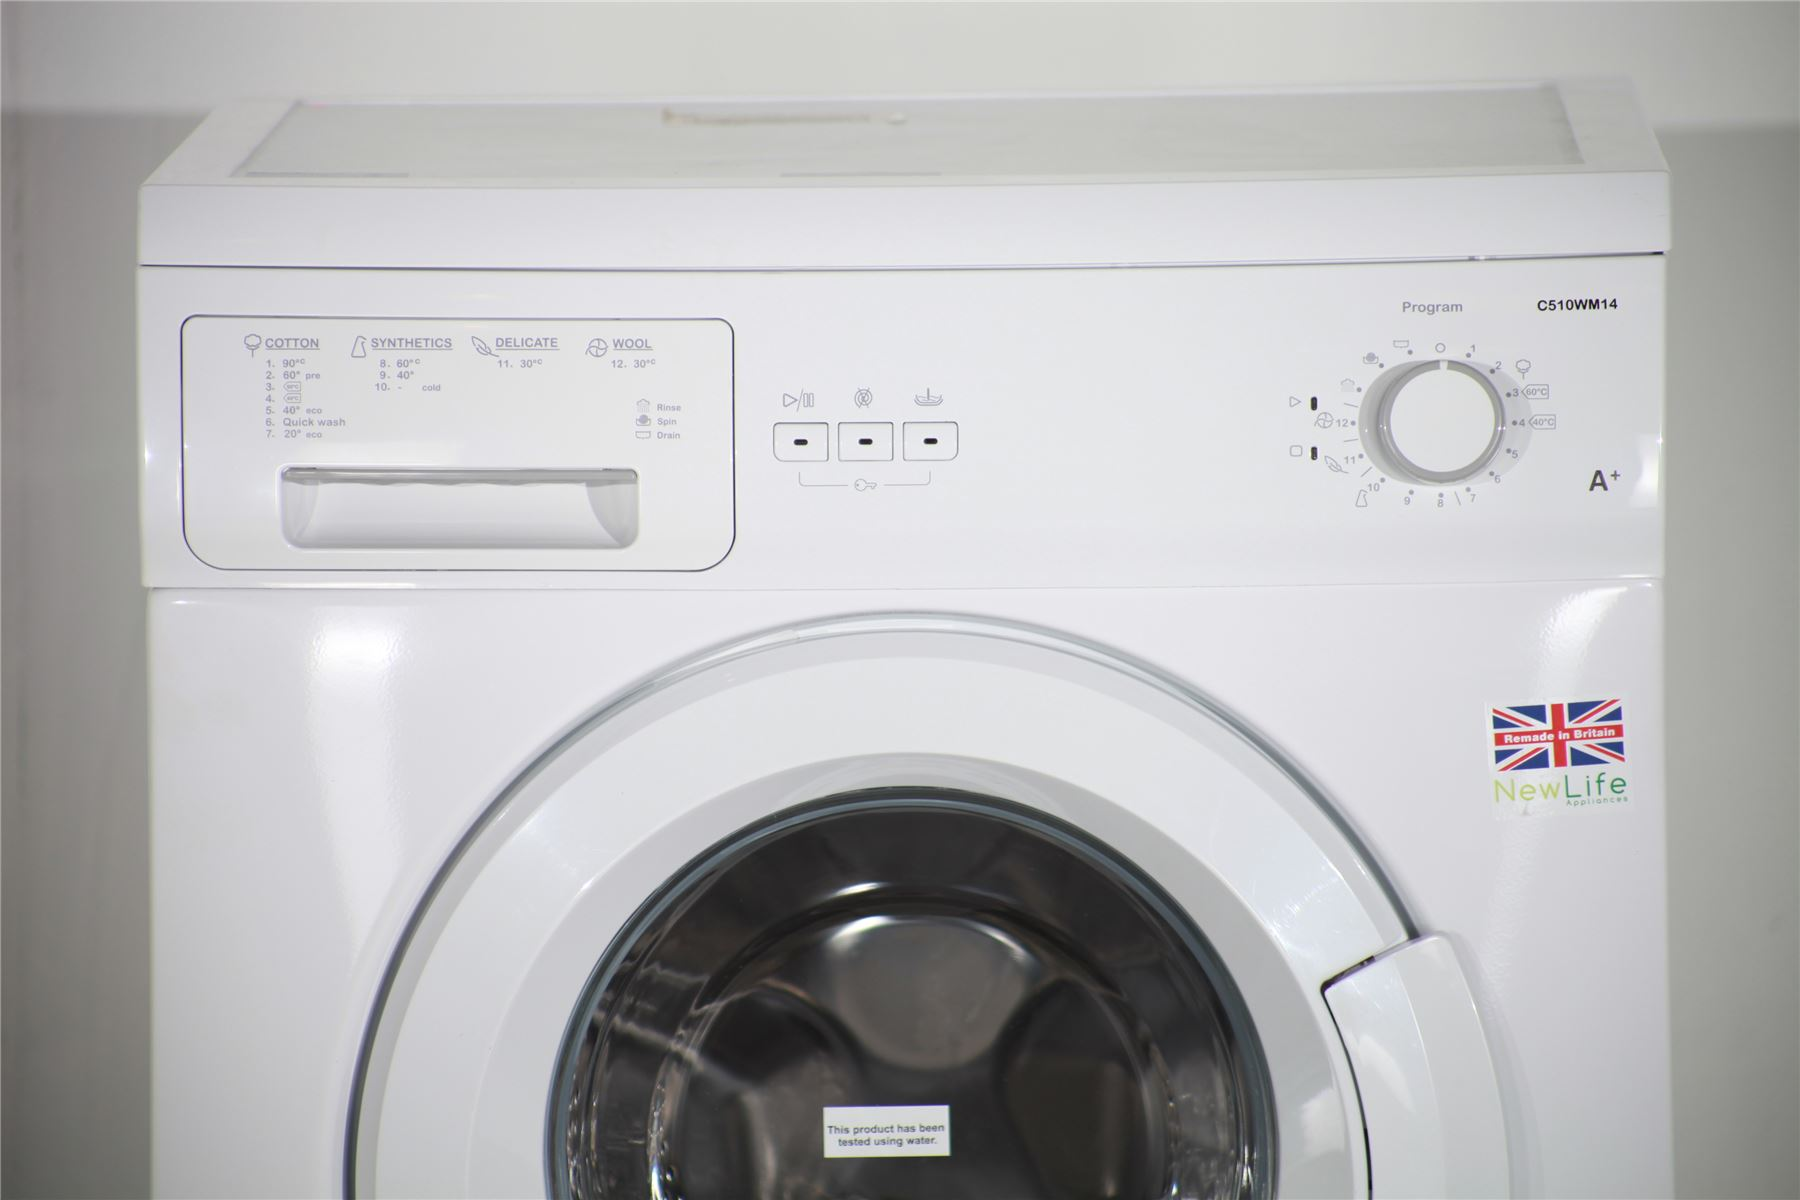 ... 5kg washing machine - c510wm14 - white for sale in Mile End, London